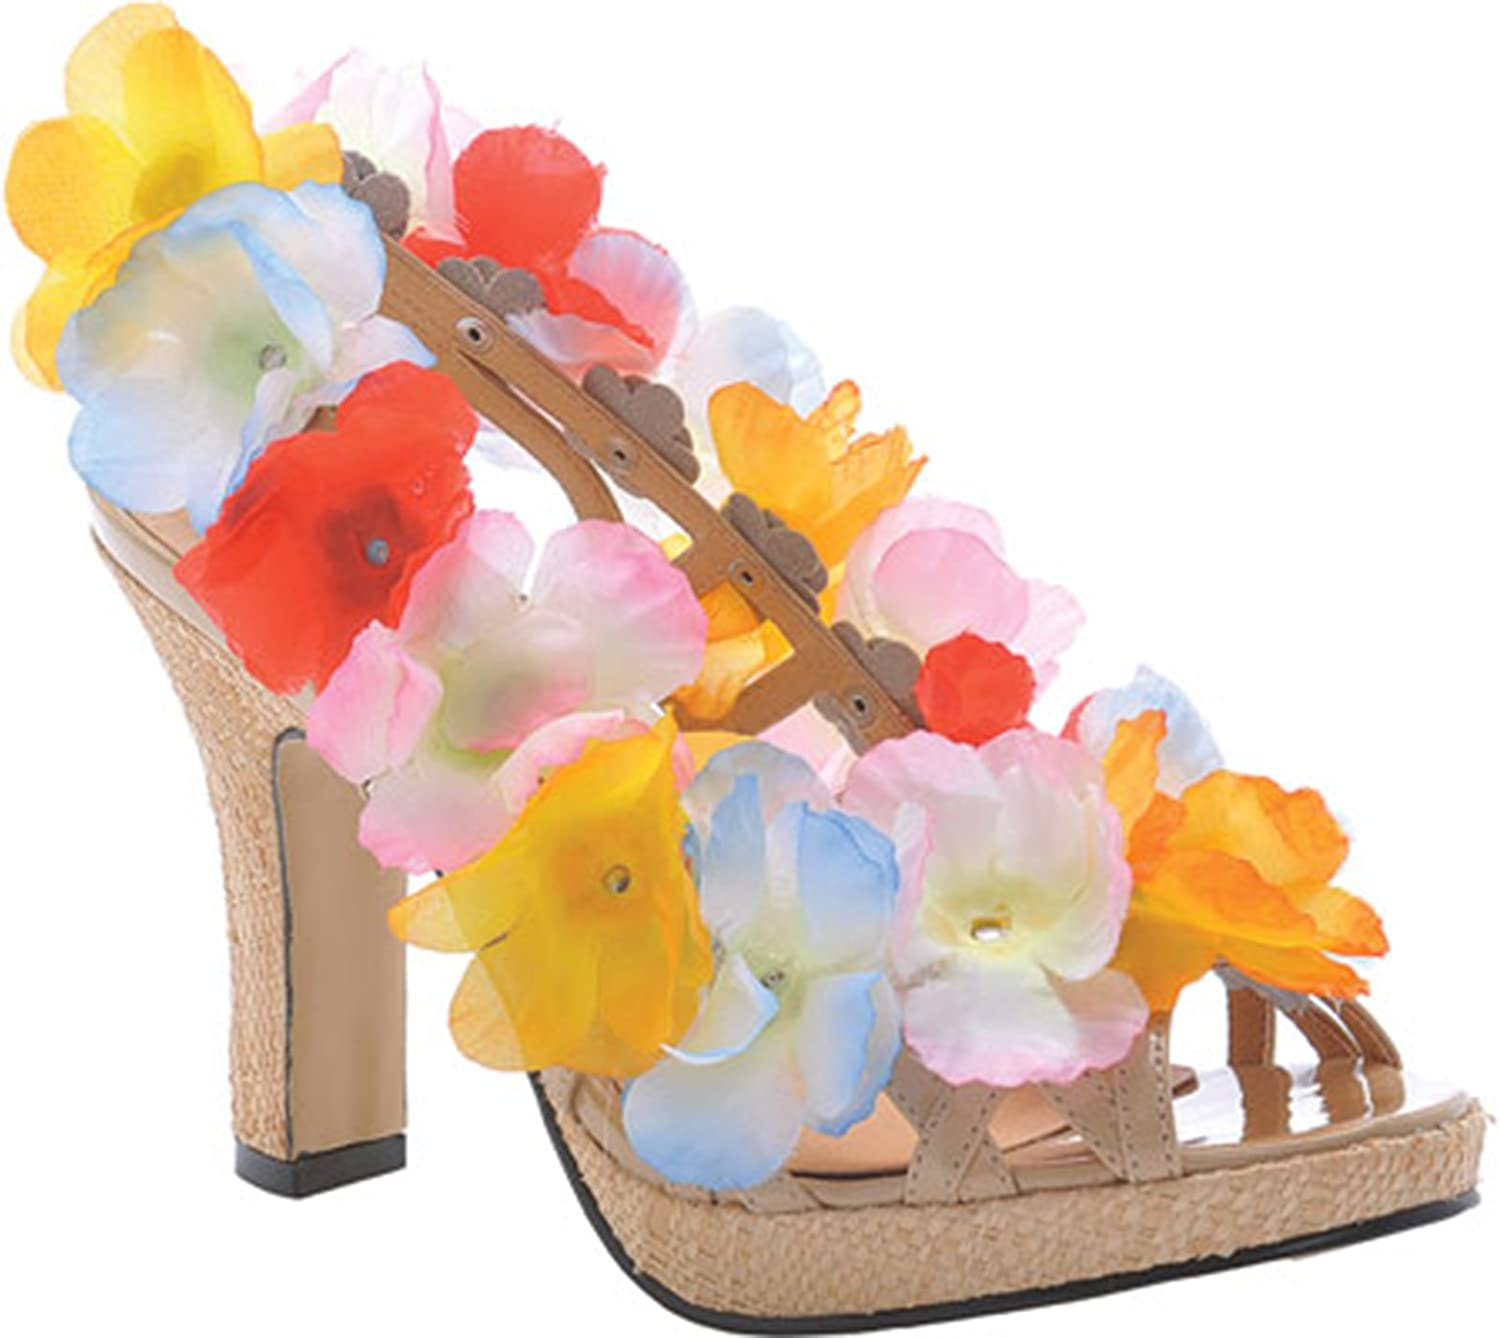 Ellie shoes ELLIE 402-LUAU 4  Heel Women's Sandal with Flower, Multi-color, 10 Size